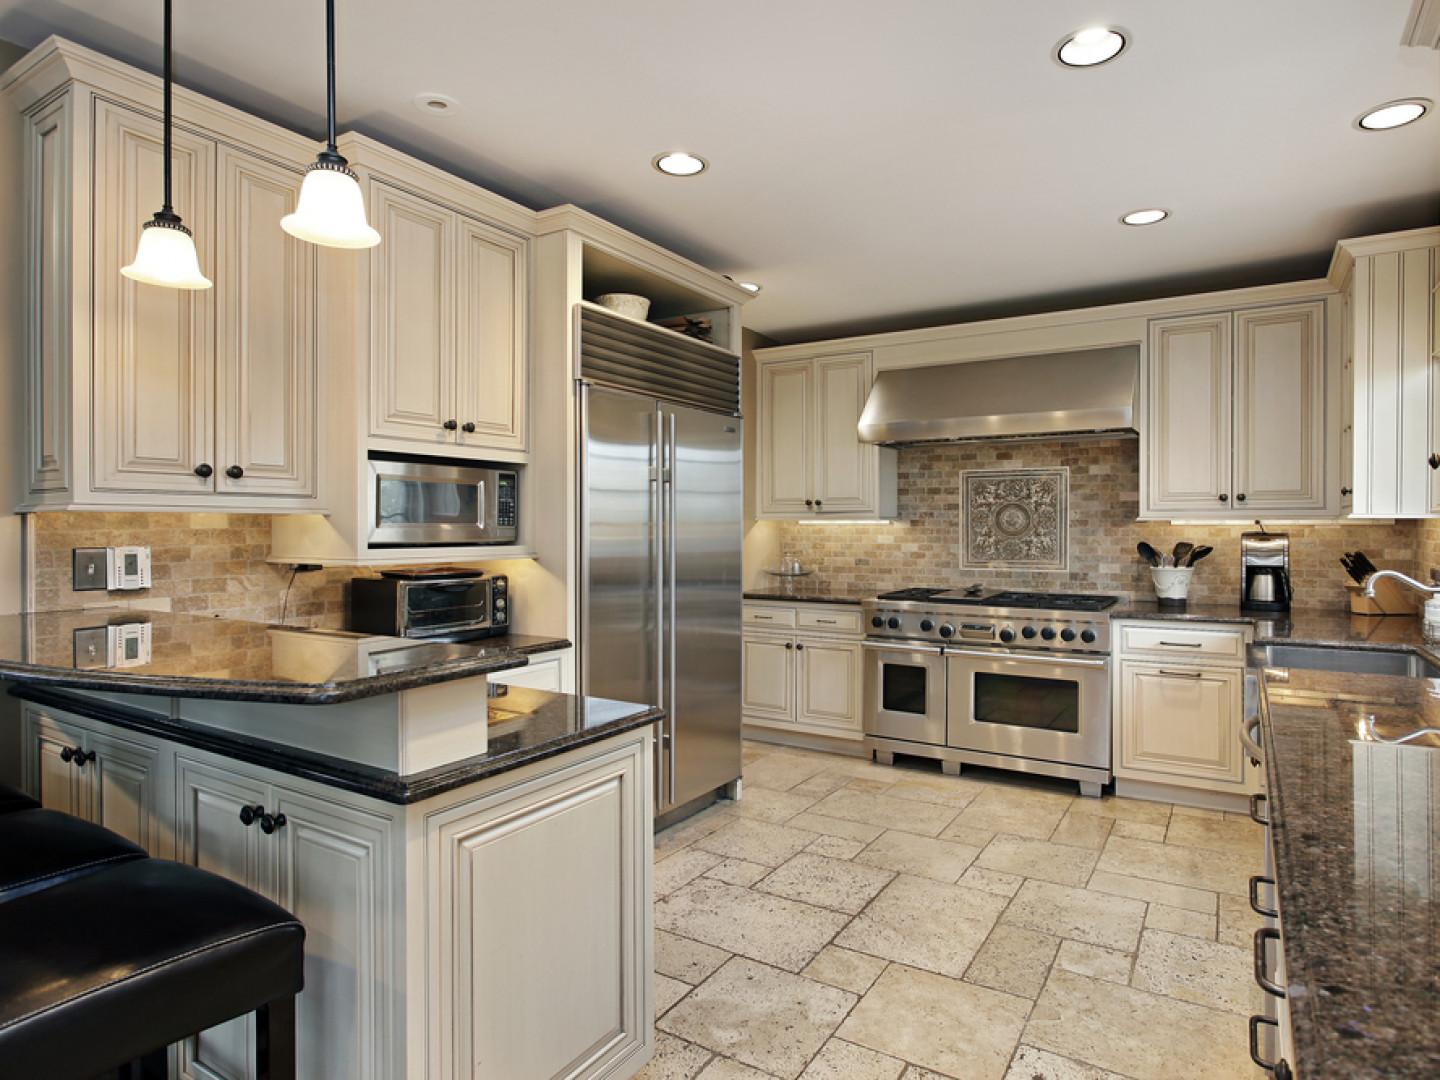 Check out the benefits of modernizing your kitchen